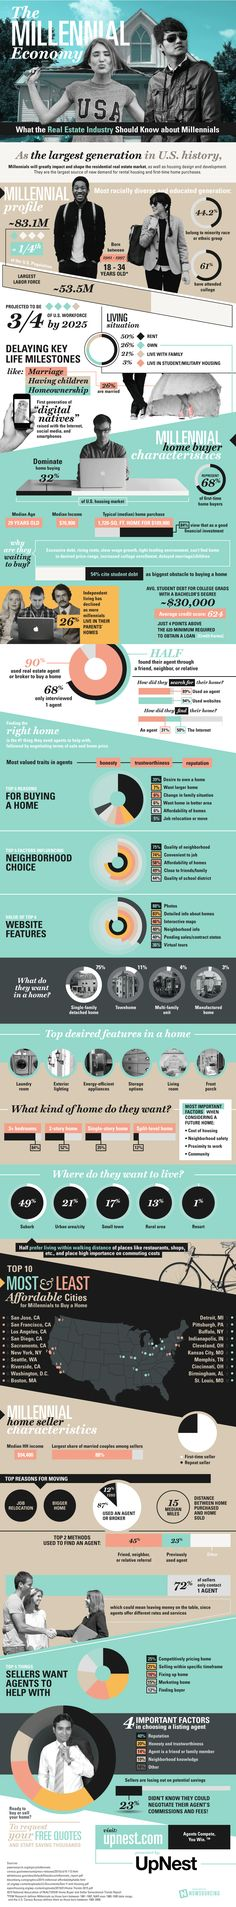 What the Real Estate Industry Should Know about Millennials #infographic #RealEstate #Economy